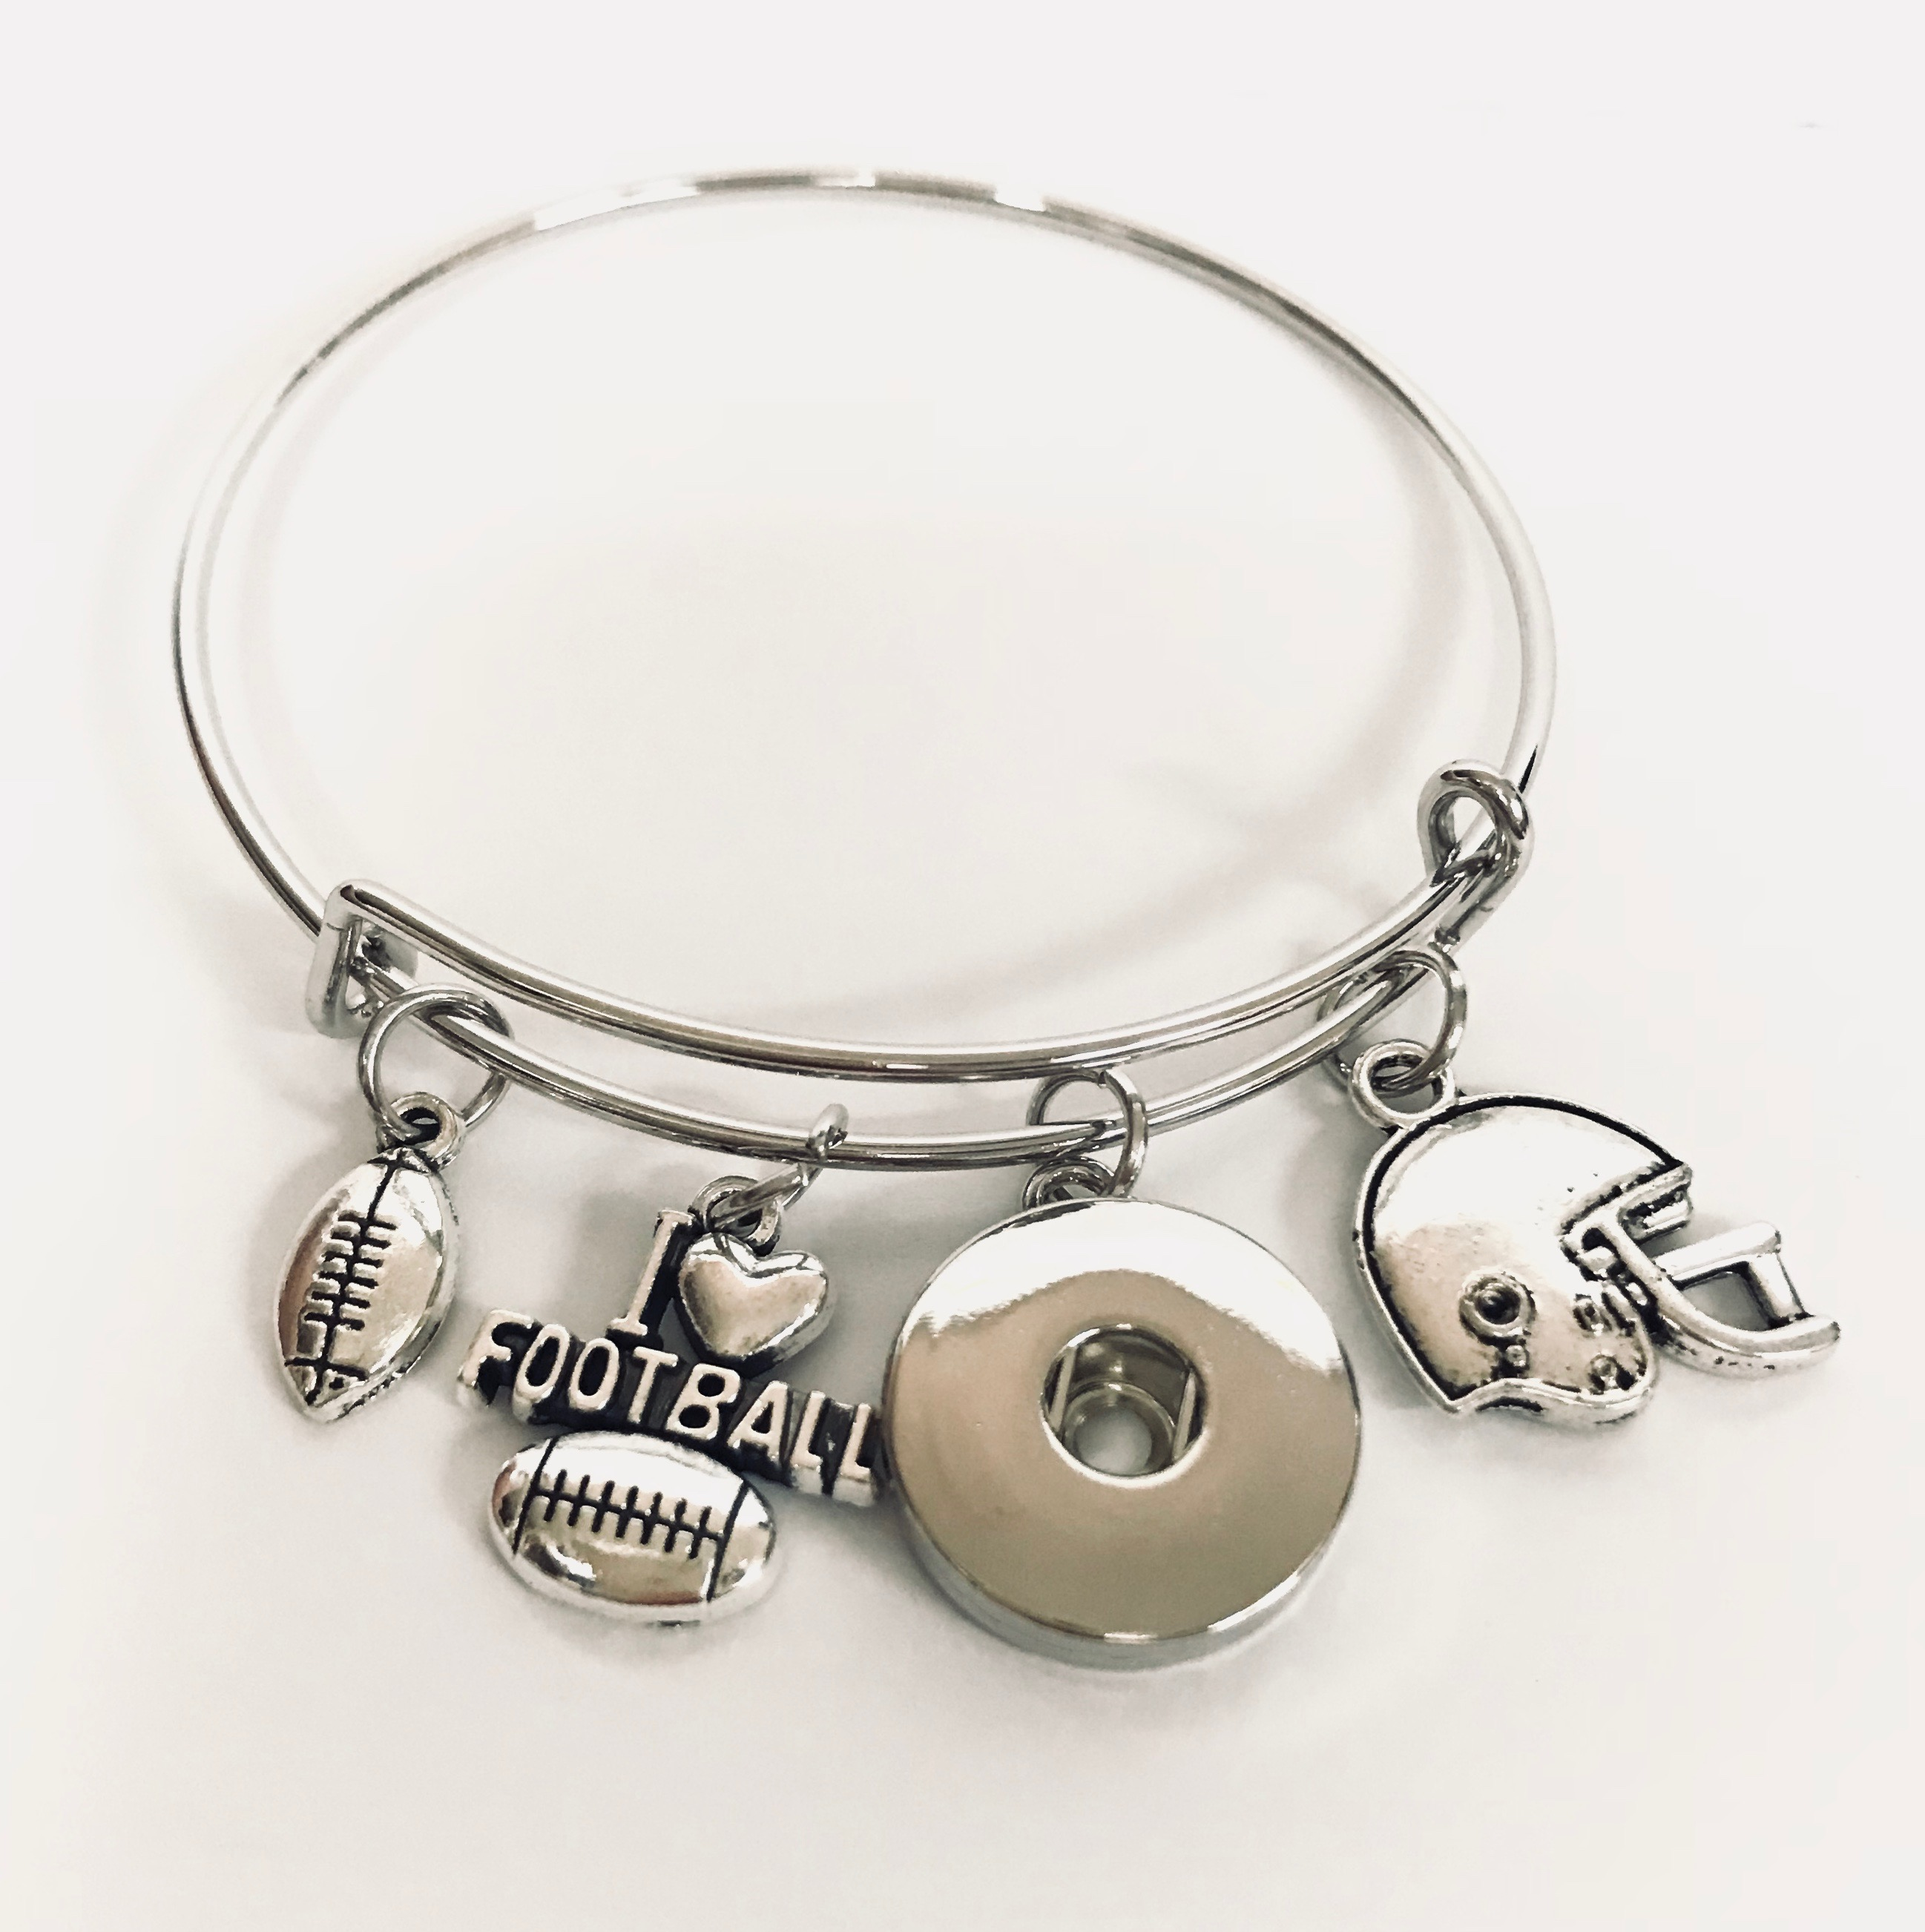 Snap Jewelry Wire Expandable Bangle - Football